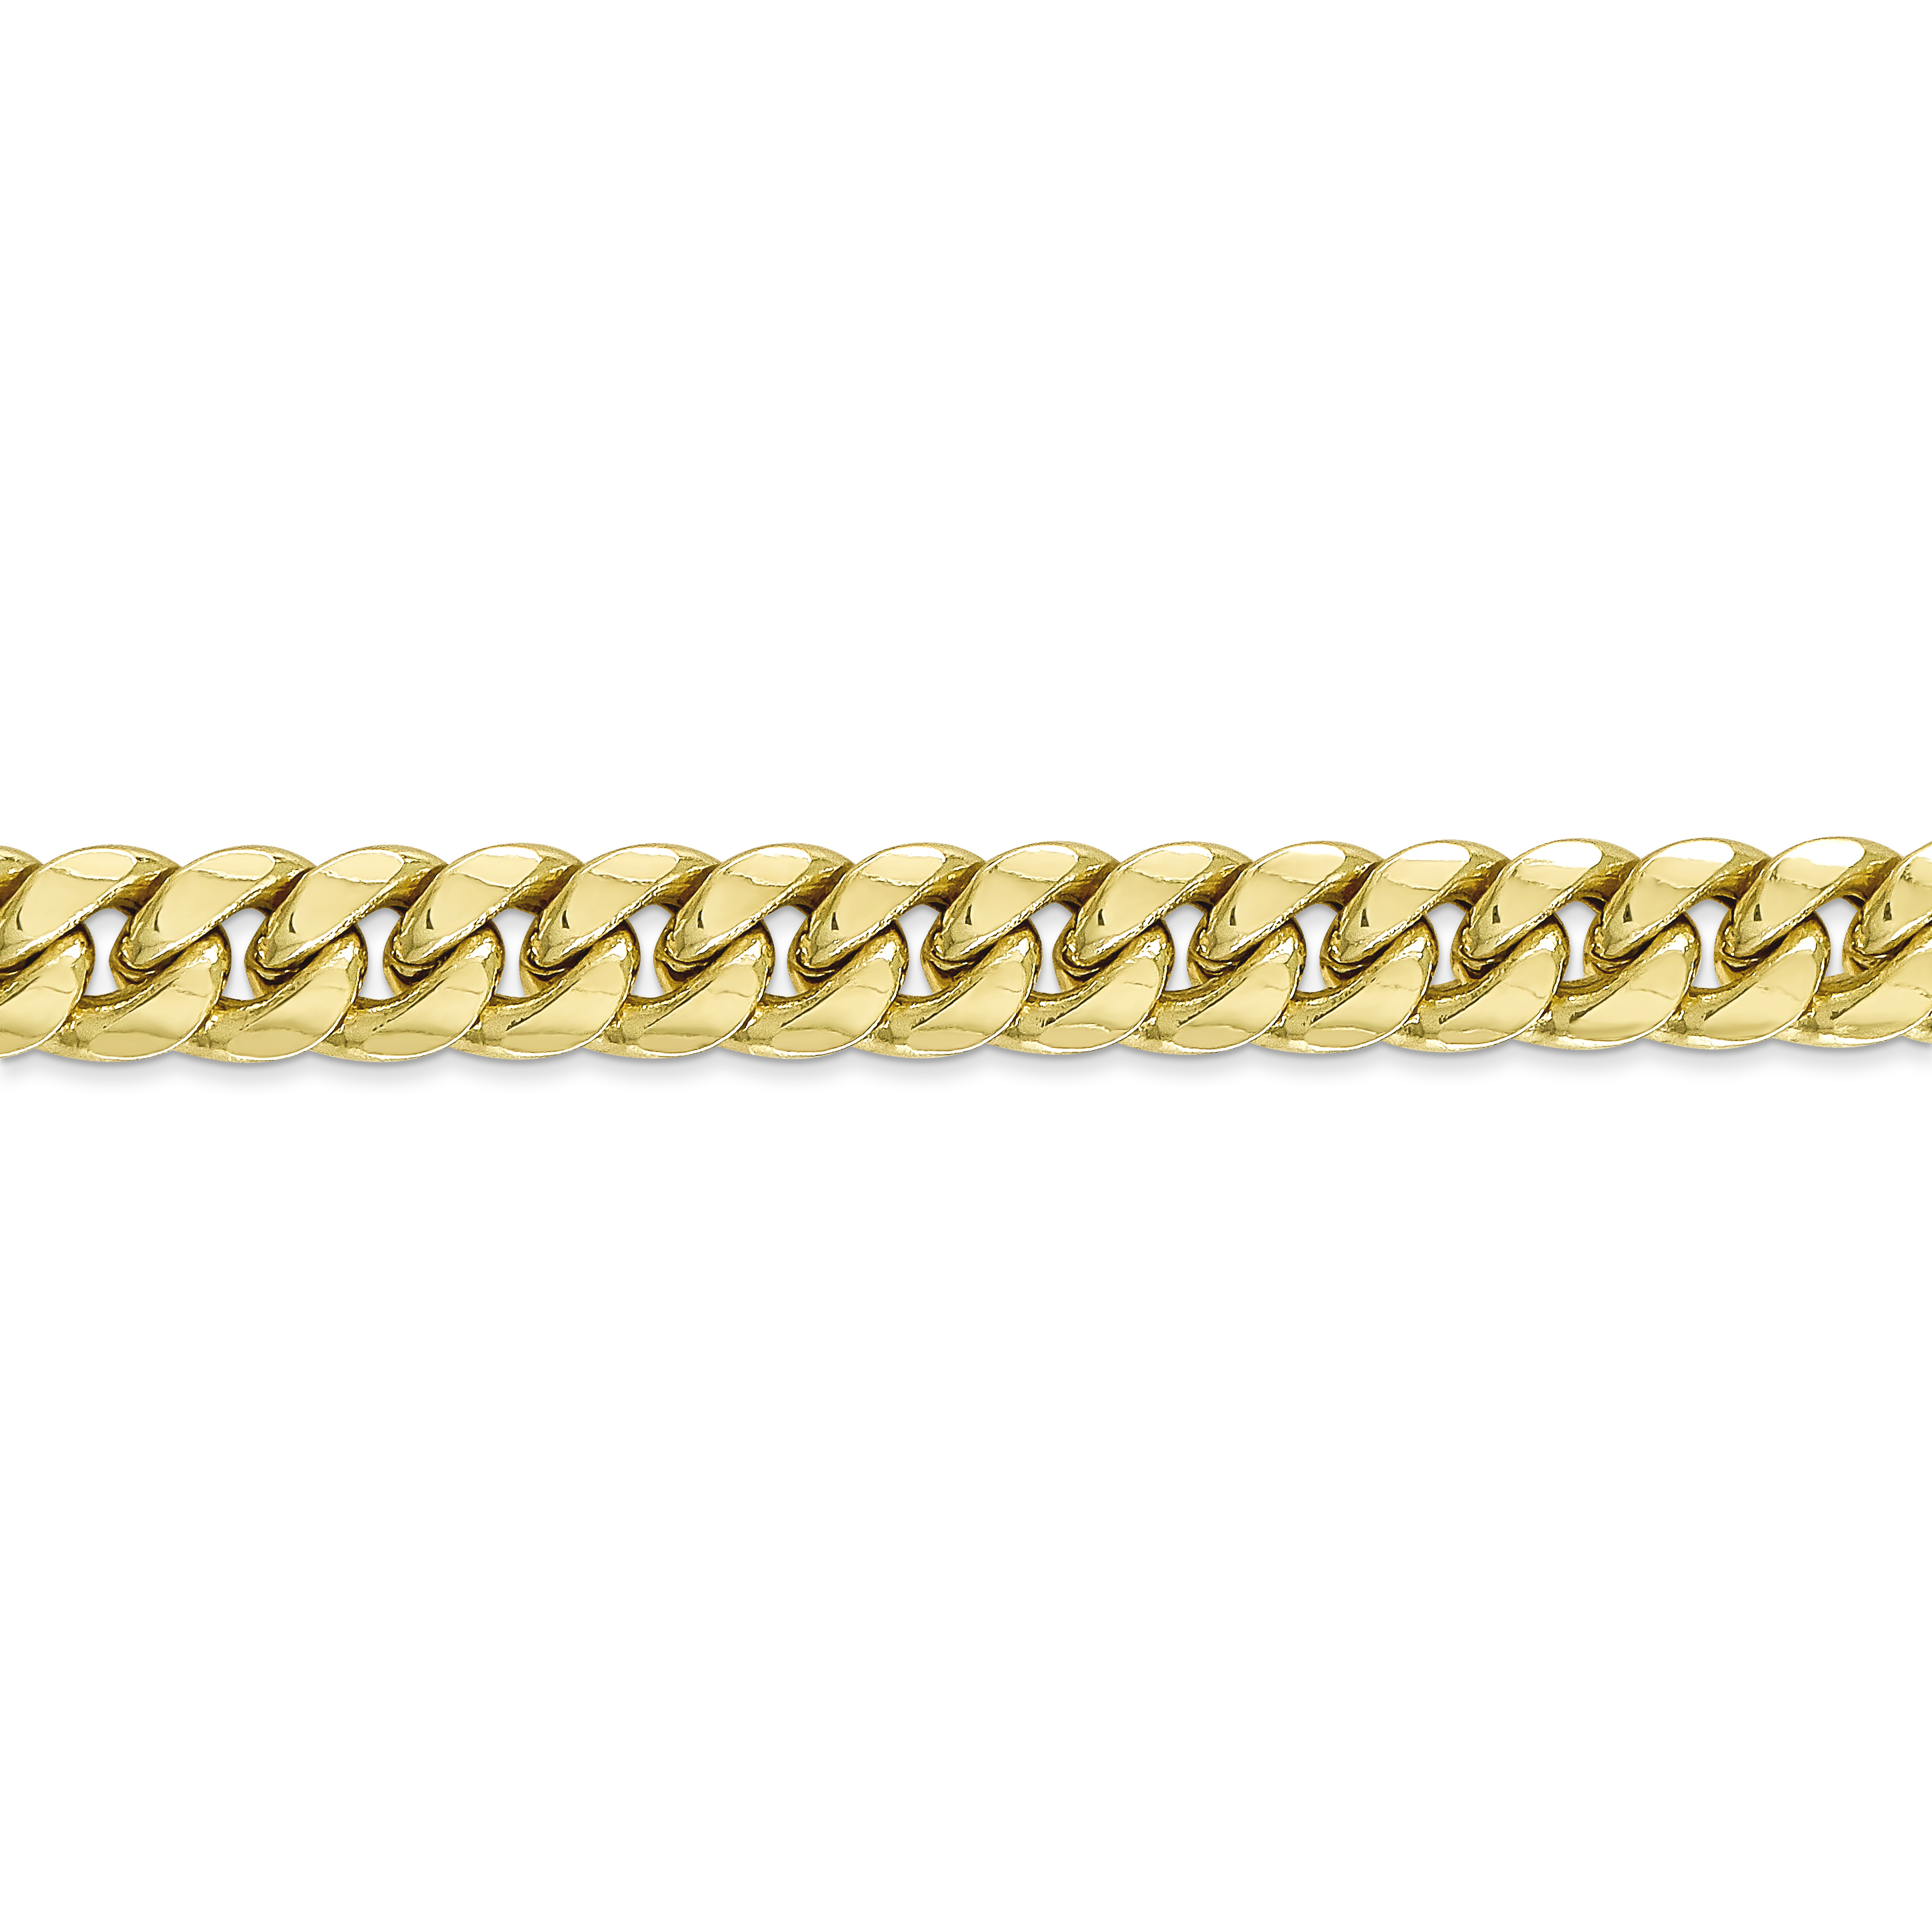 10K Yellow Gold 7.3 mm Miami Cuban Chain 26 IN - image 3 of 5